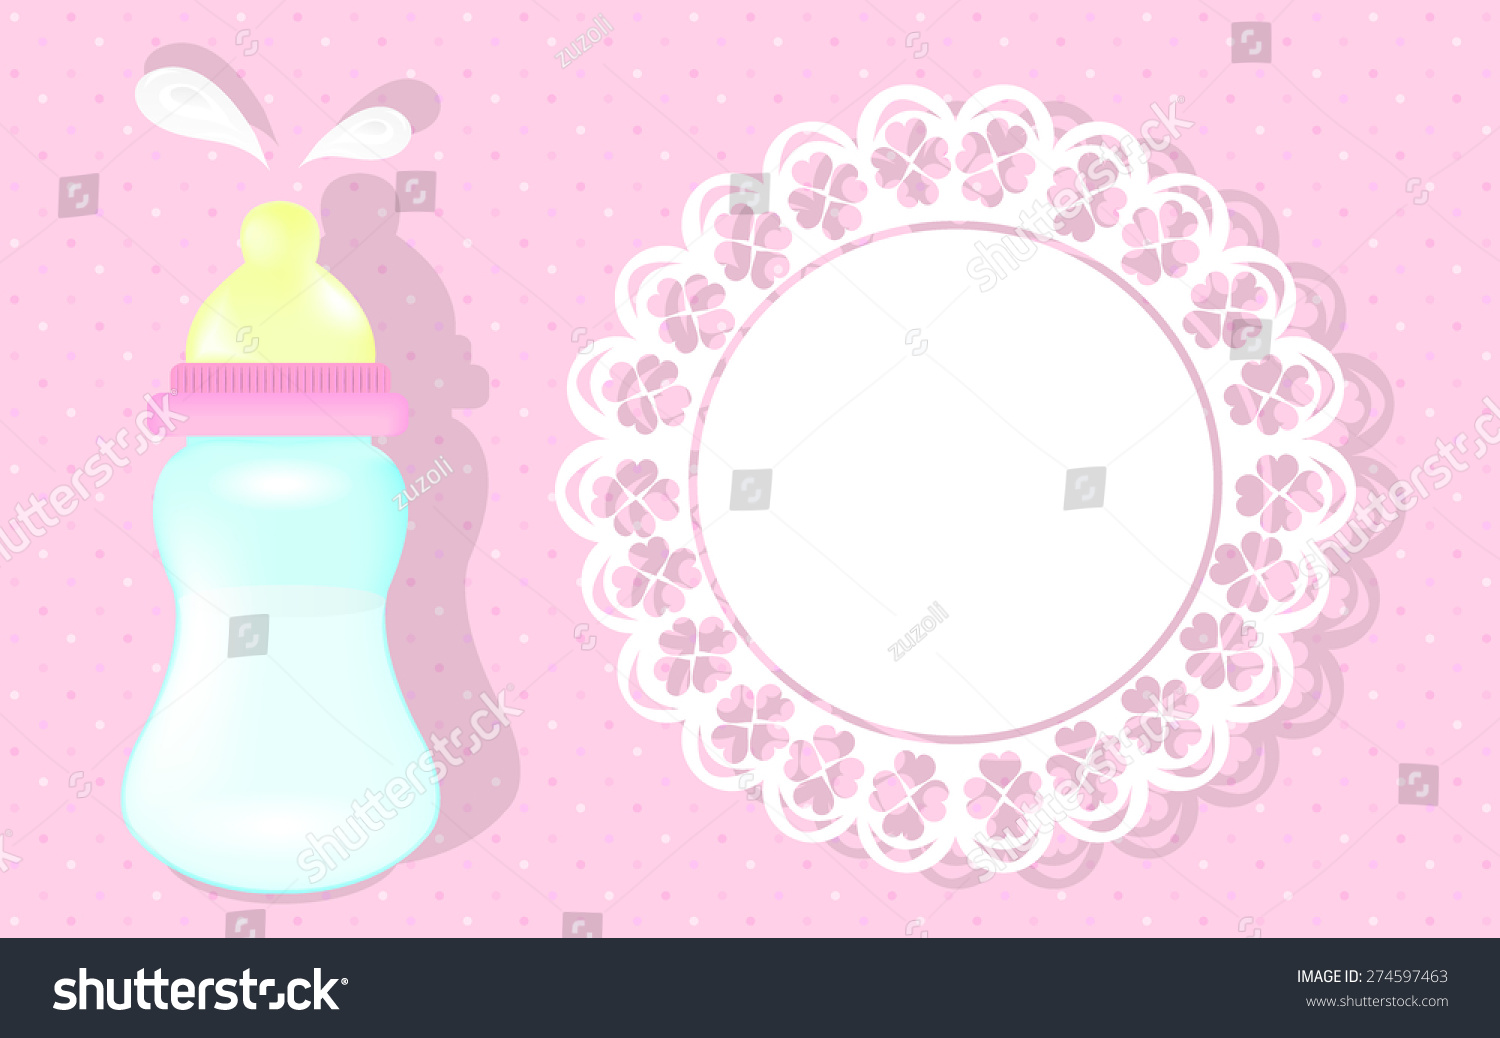 Baby Girl Shower Card Pink Background Stock Vector 2018 274597463